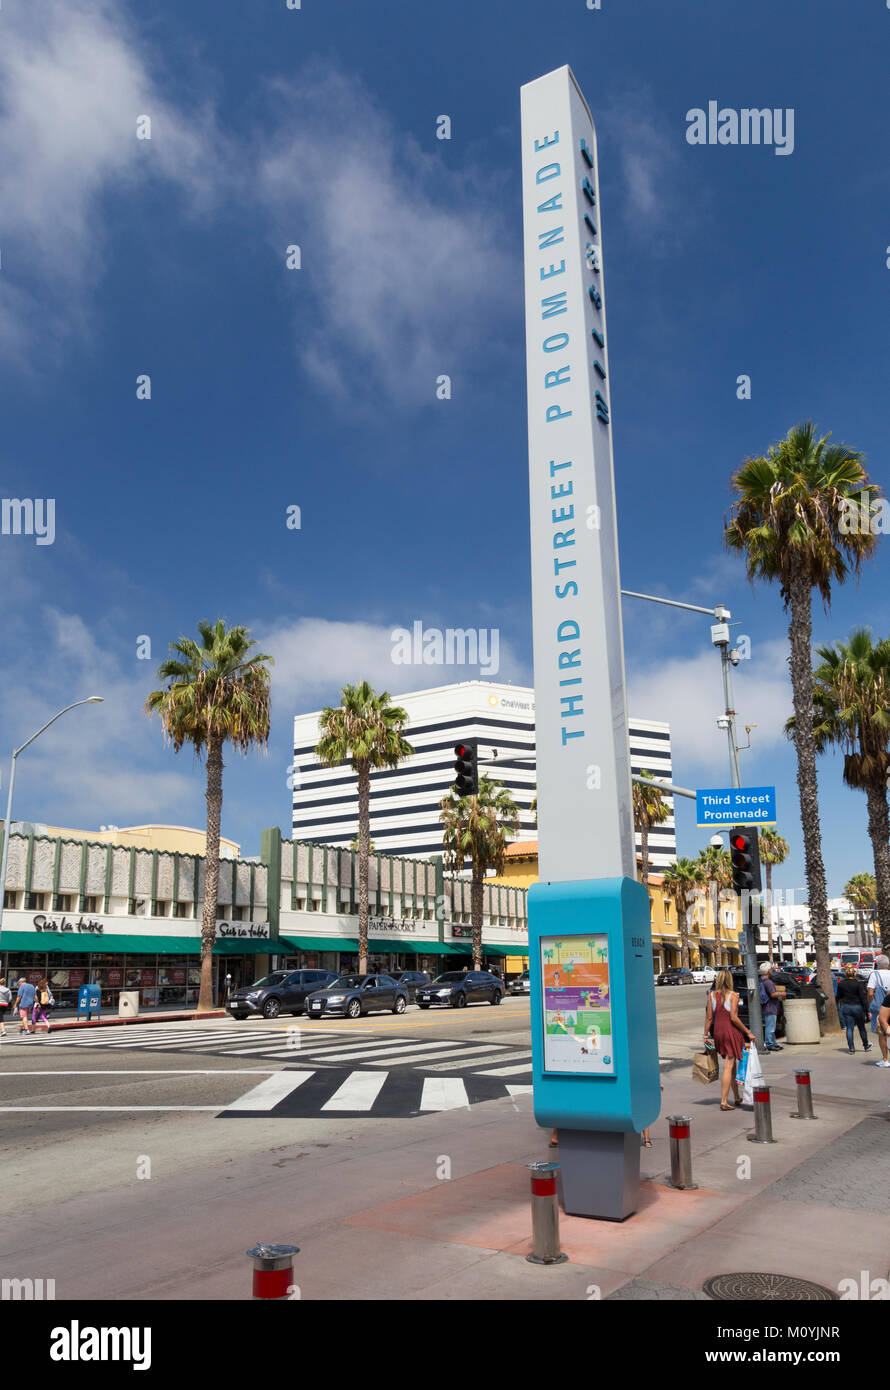 Street sign at the junction of 3rd Street Promenade and Wilshire Blvd, Santa Monica, California, United States - Stock Image